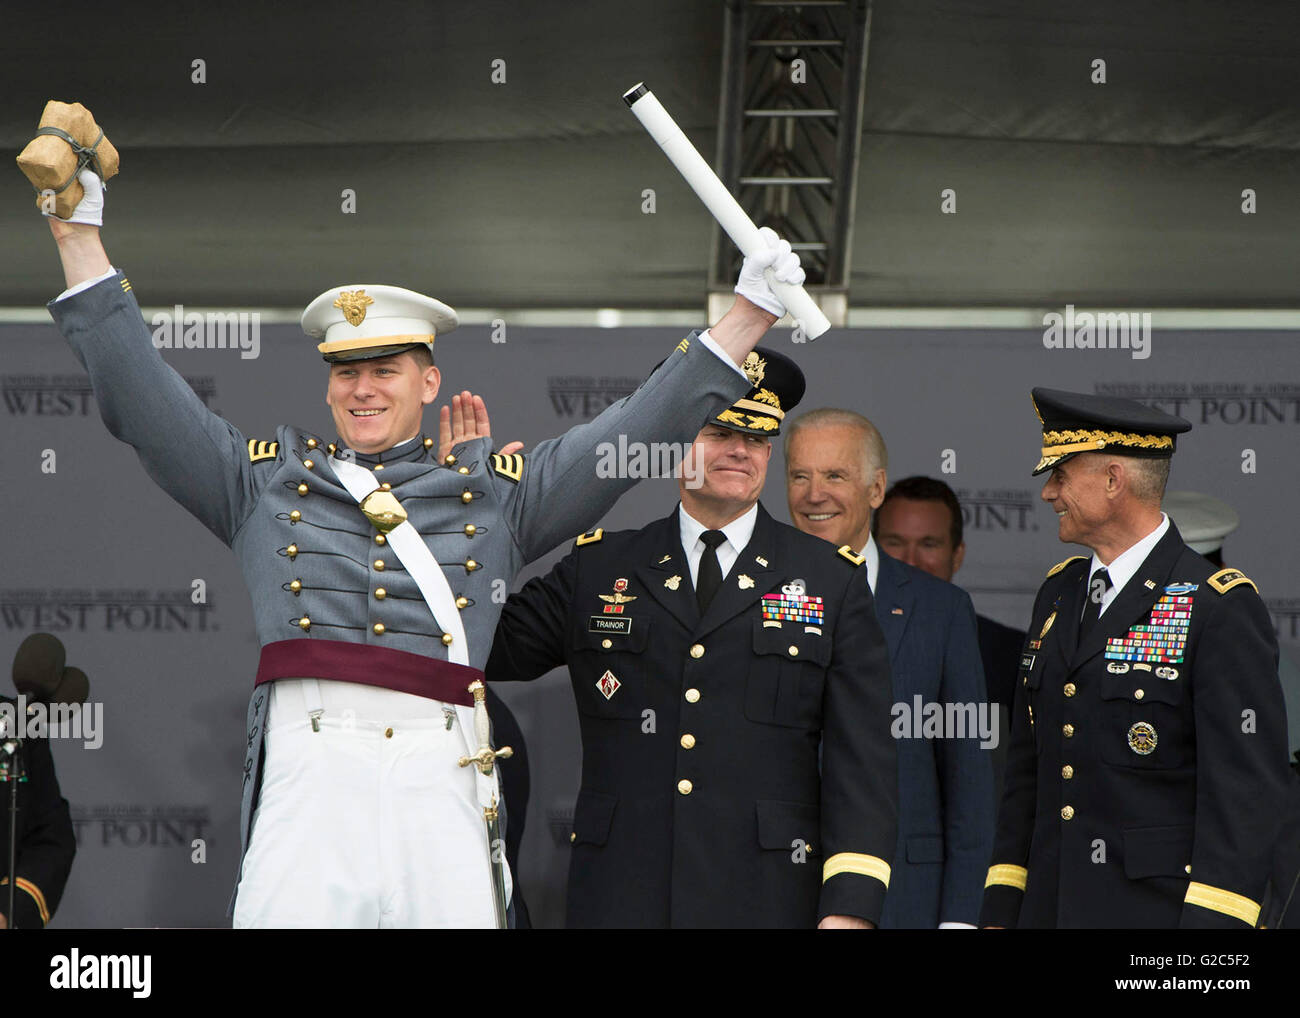 U.S. Vice President Joe Biden smiles as Army Cadet Alex Fletcher celebrates being named the Goat of the U.S. Military - Stock Image